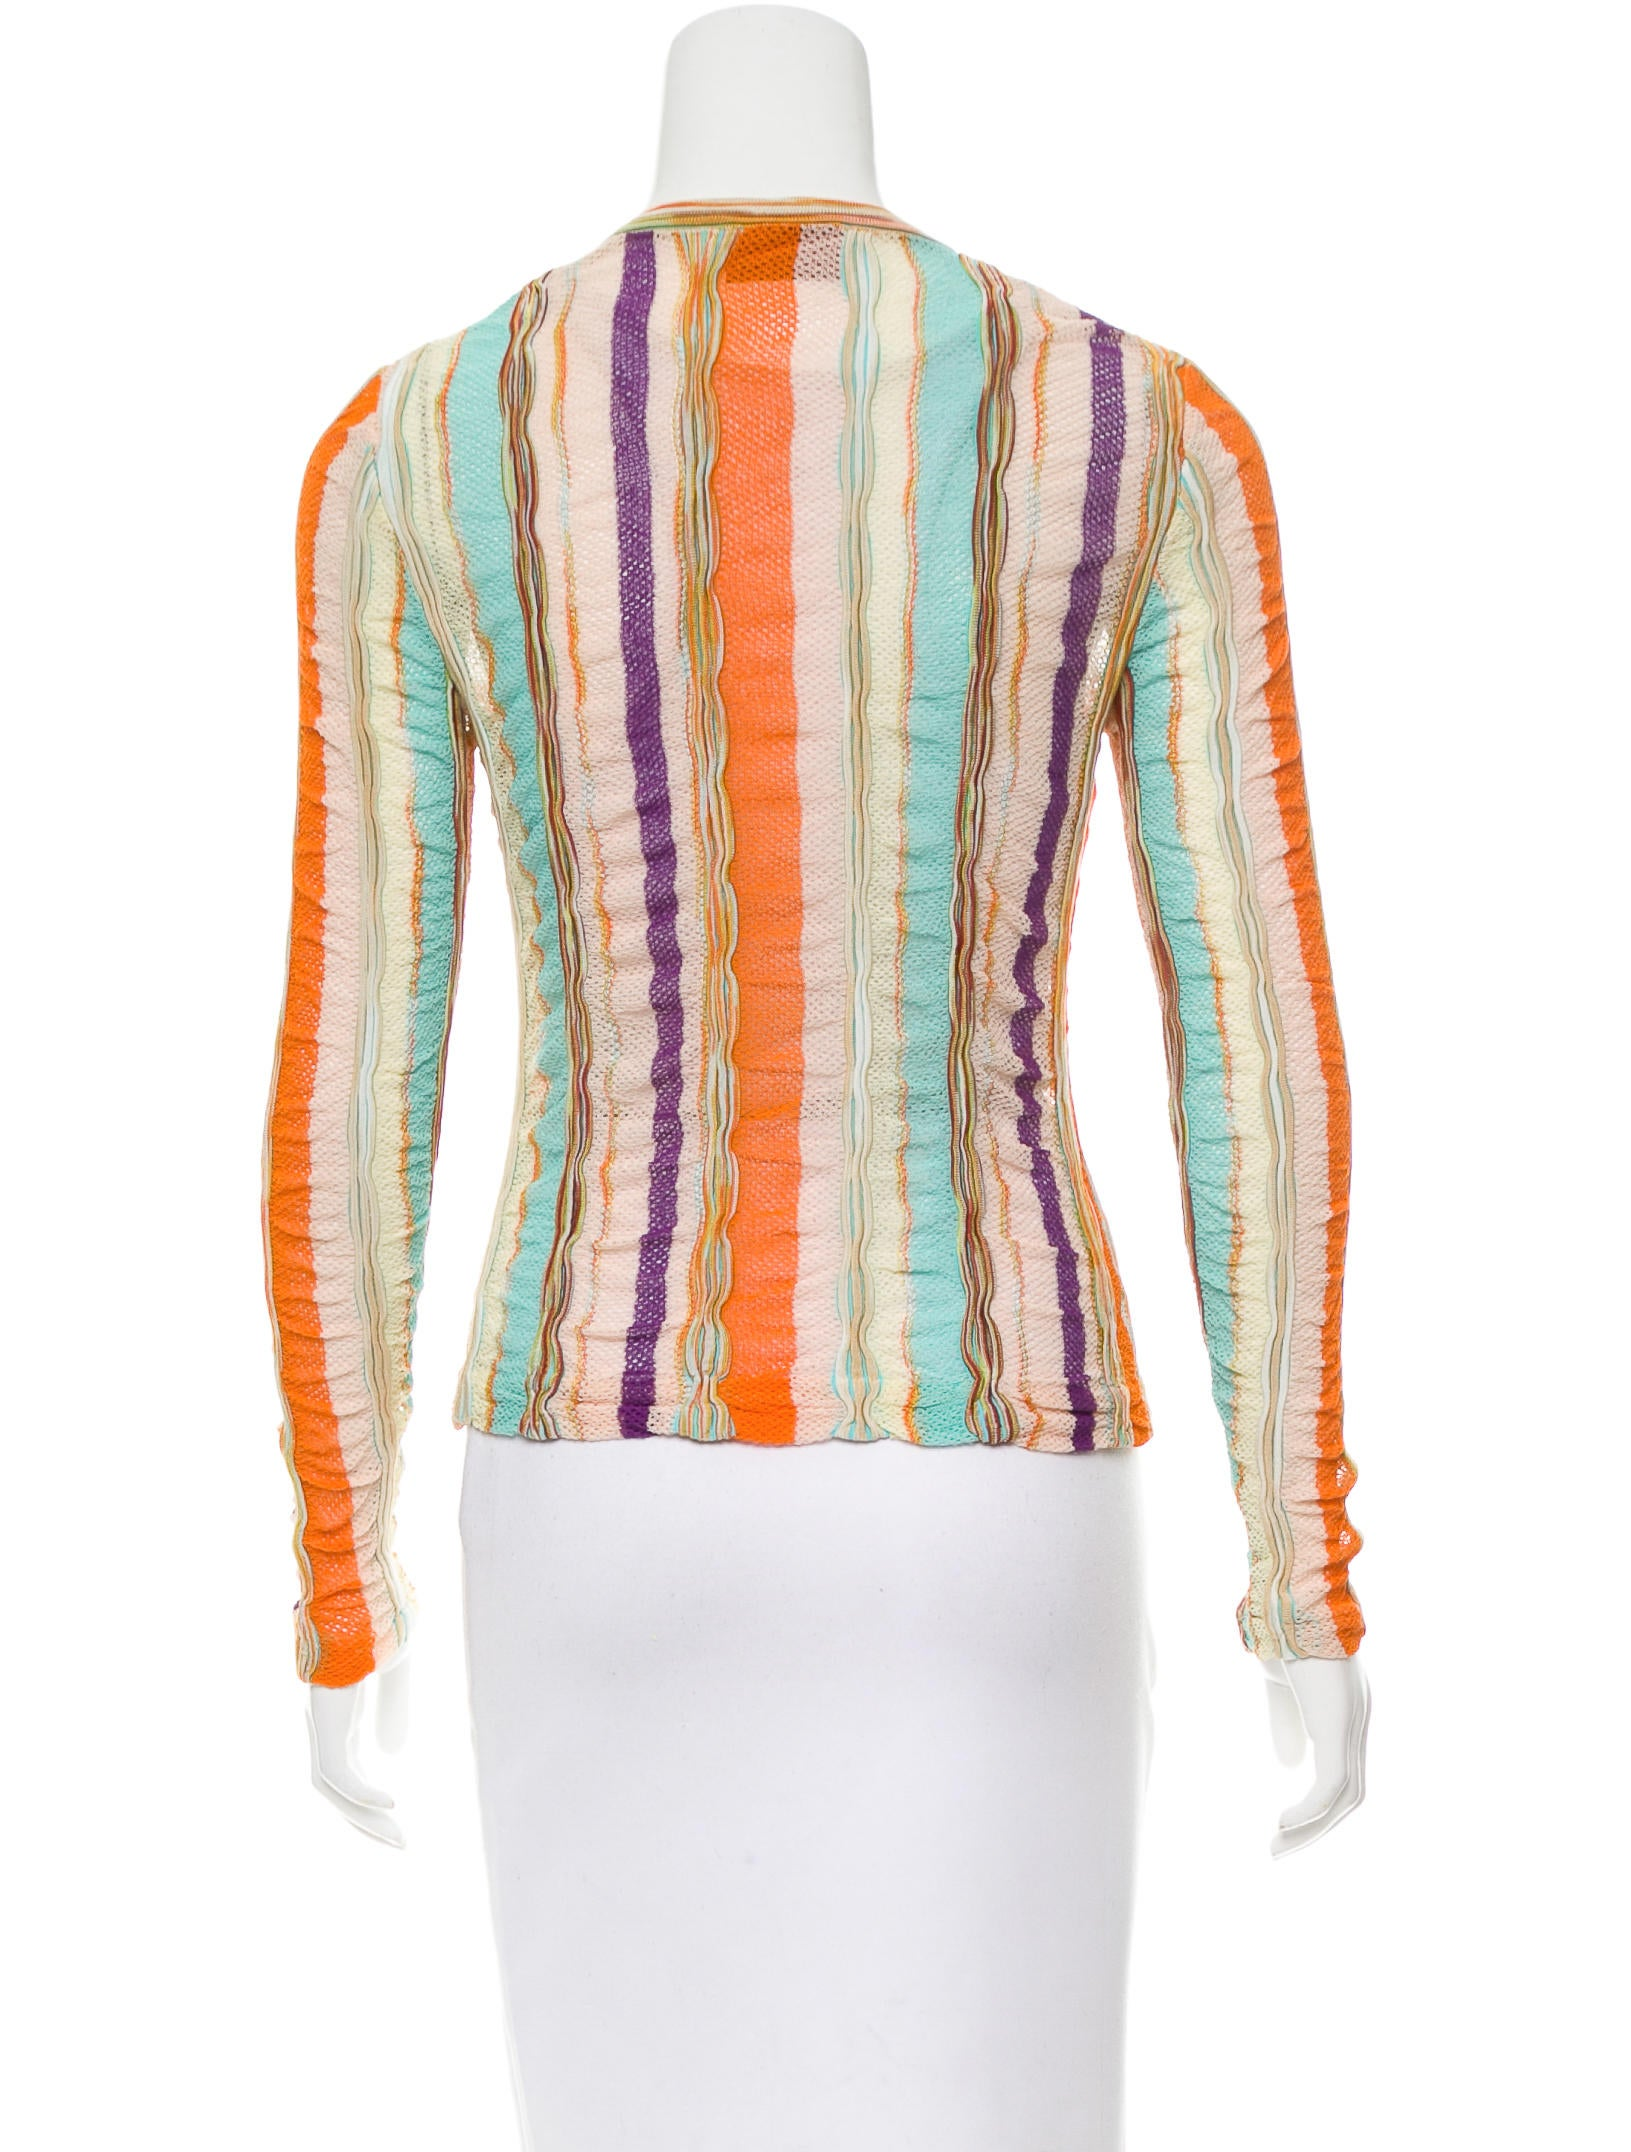 Missoni Open-Knit Striped Cardigan - Clothing - MIS40155 ...